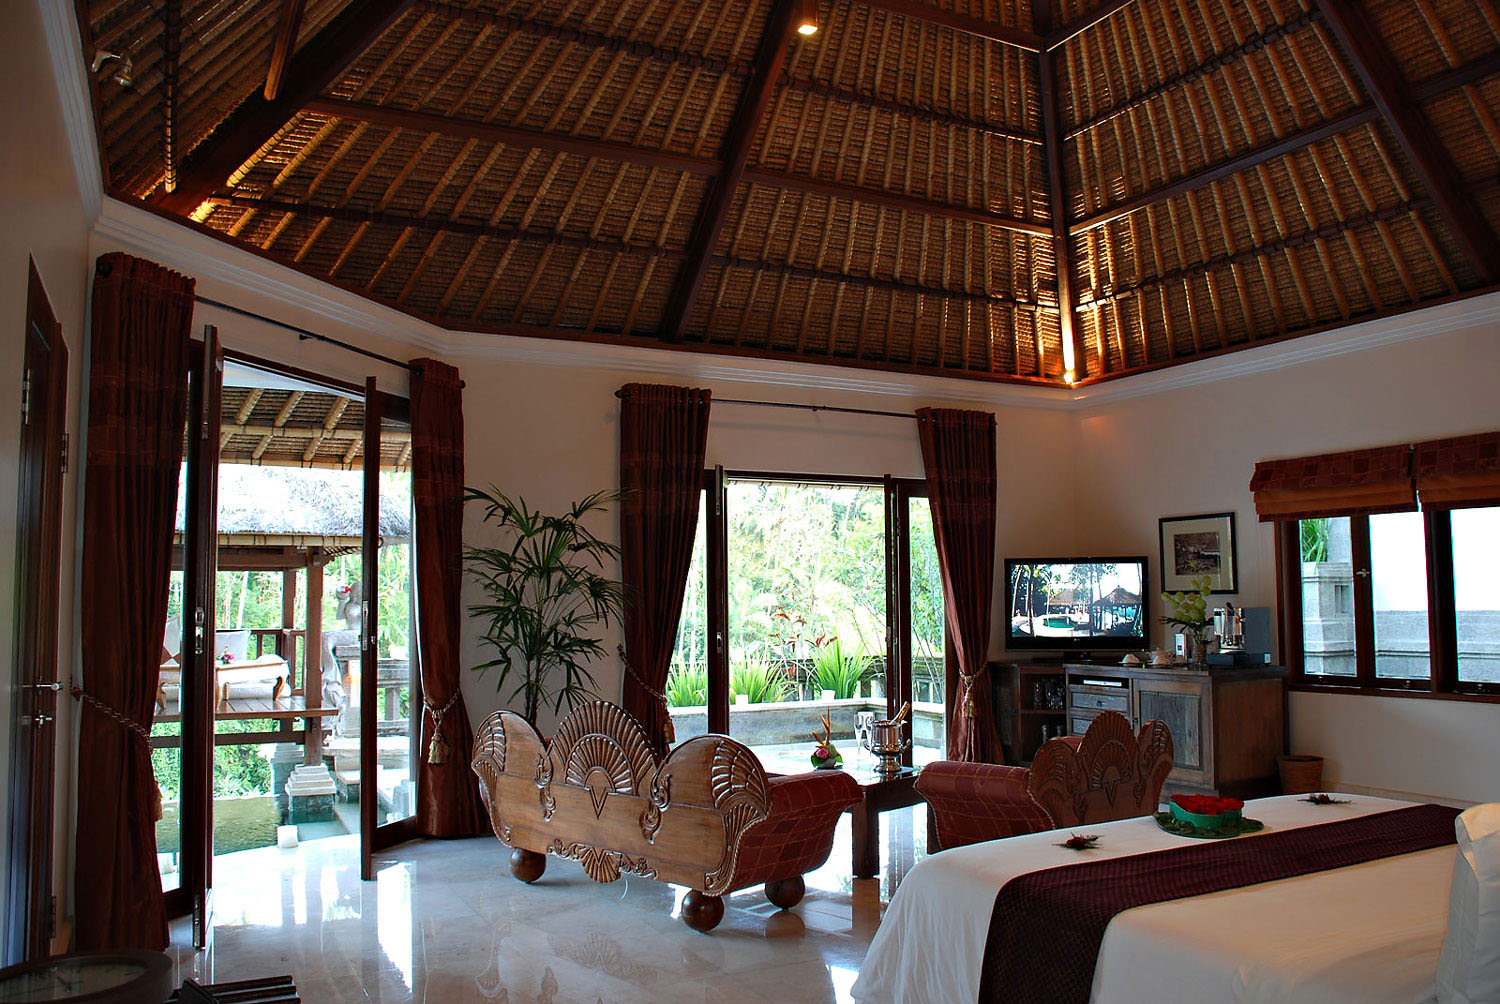 Romantic Viceroy Bali Resort In Ubud IDesignArch Interior Design Archite